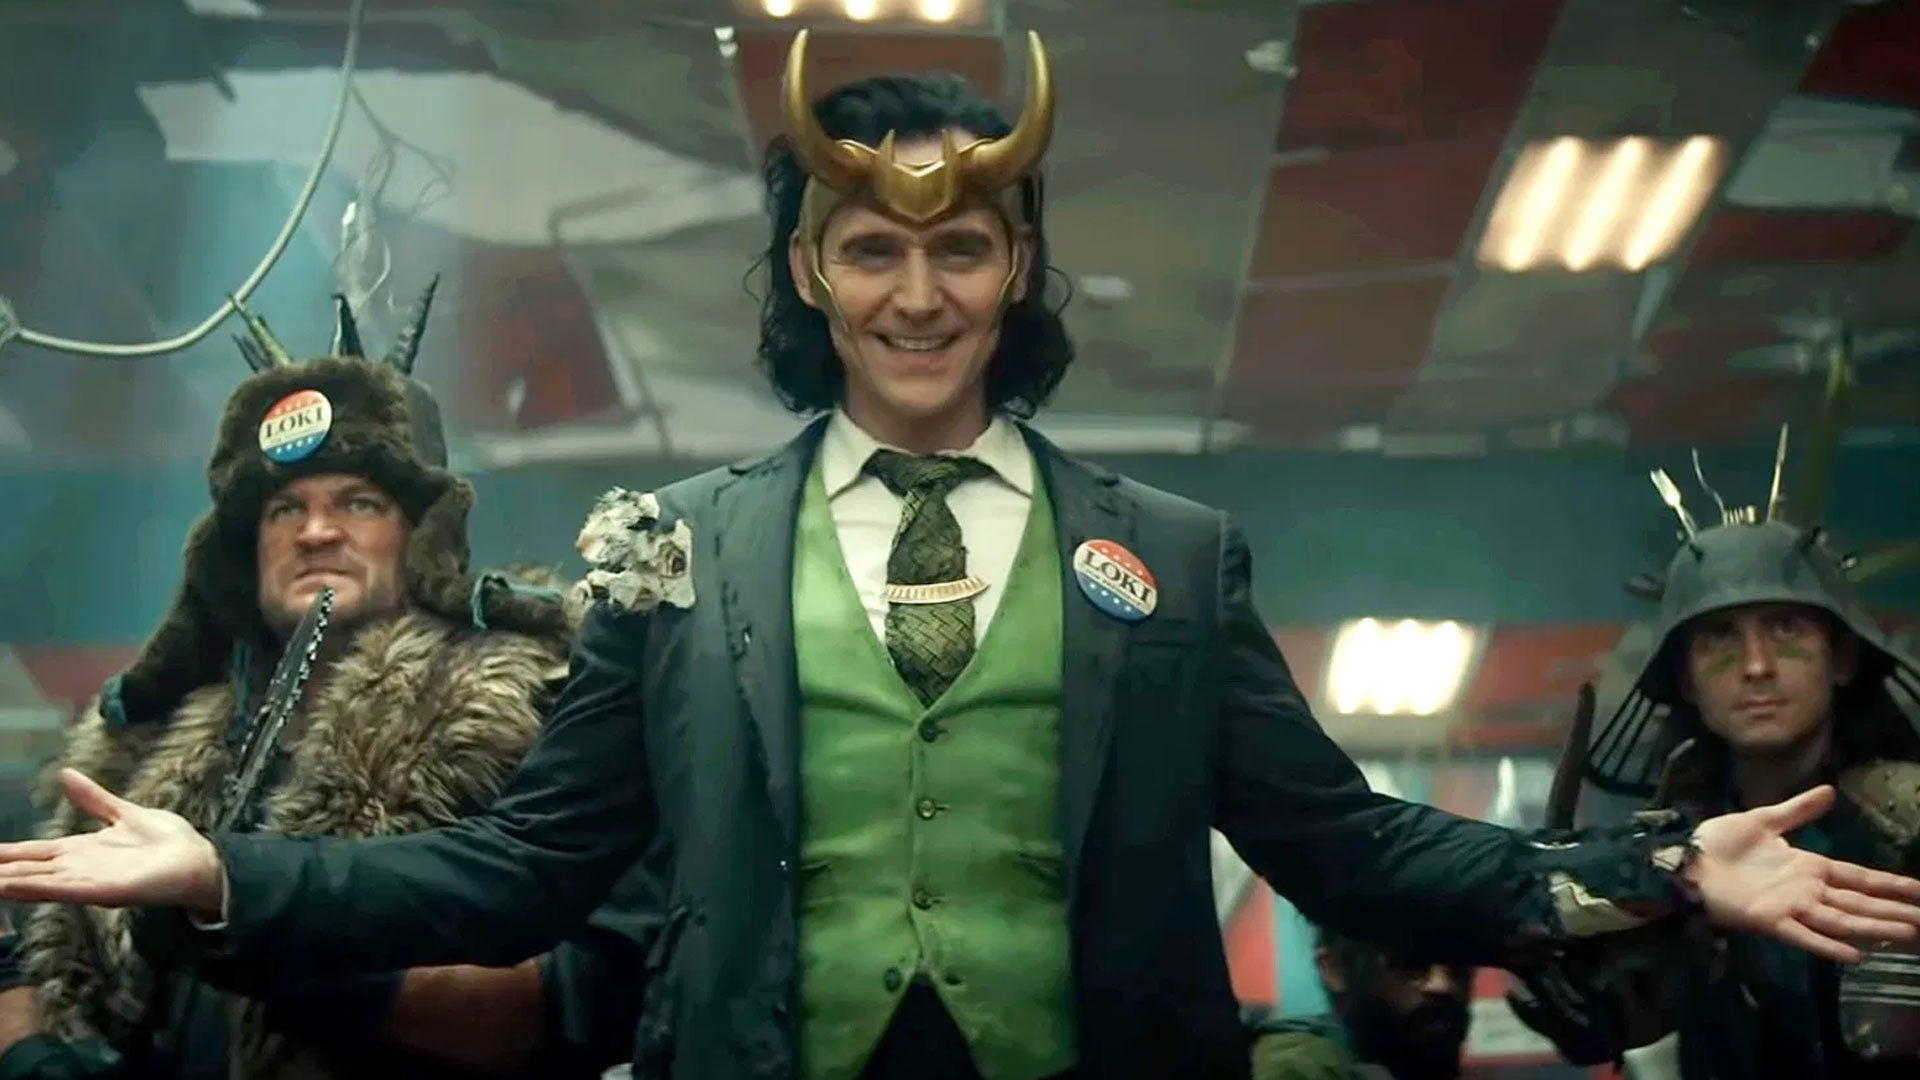 There is no confirmation of Season 2 of the show but Tom is open to continue playing Loki.